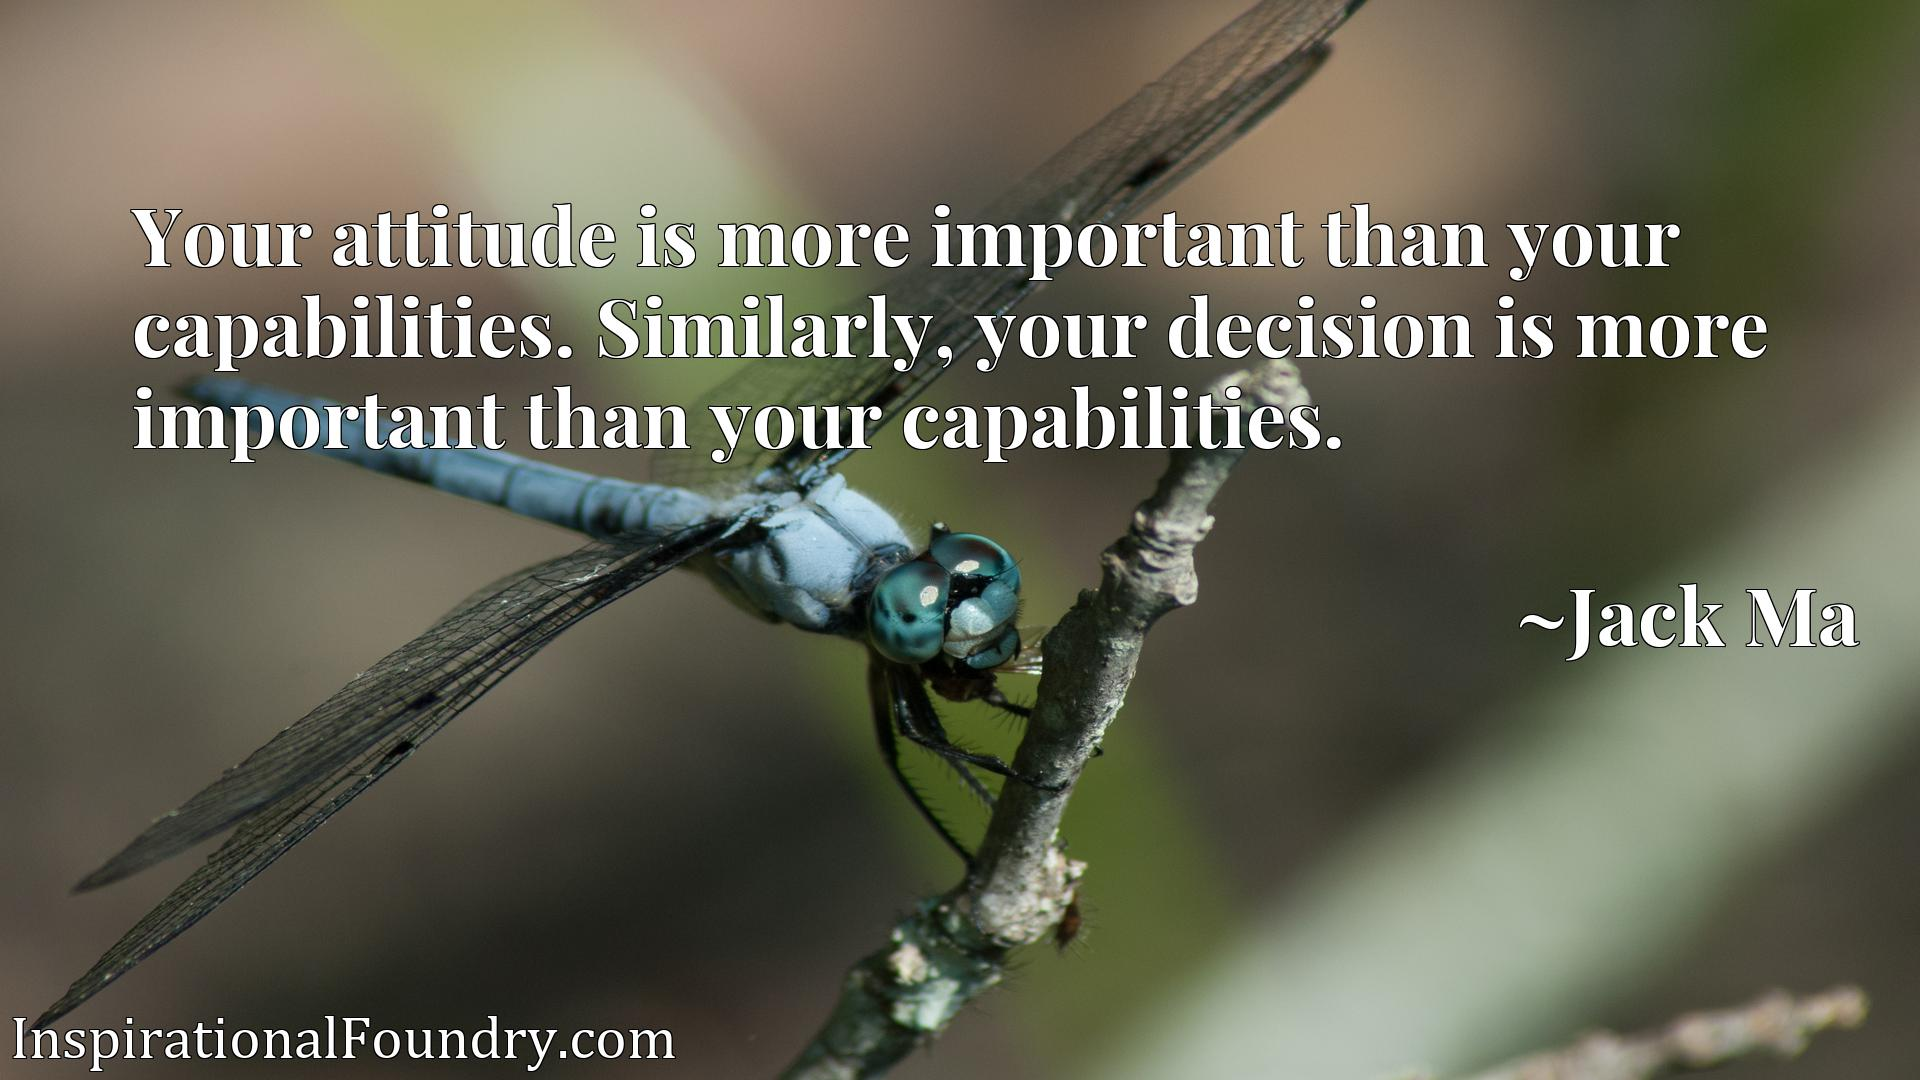 Your attitude is more important than your capabilities. Similarly, your decision is more important than your capabilities.